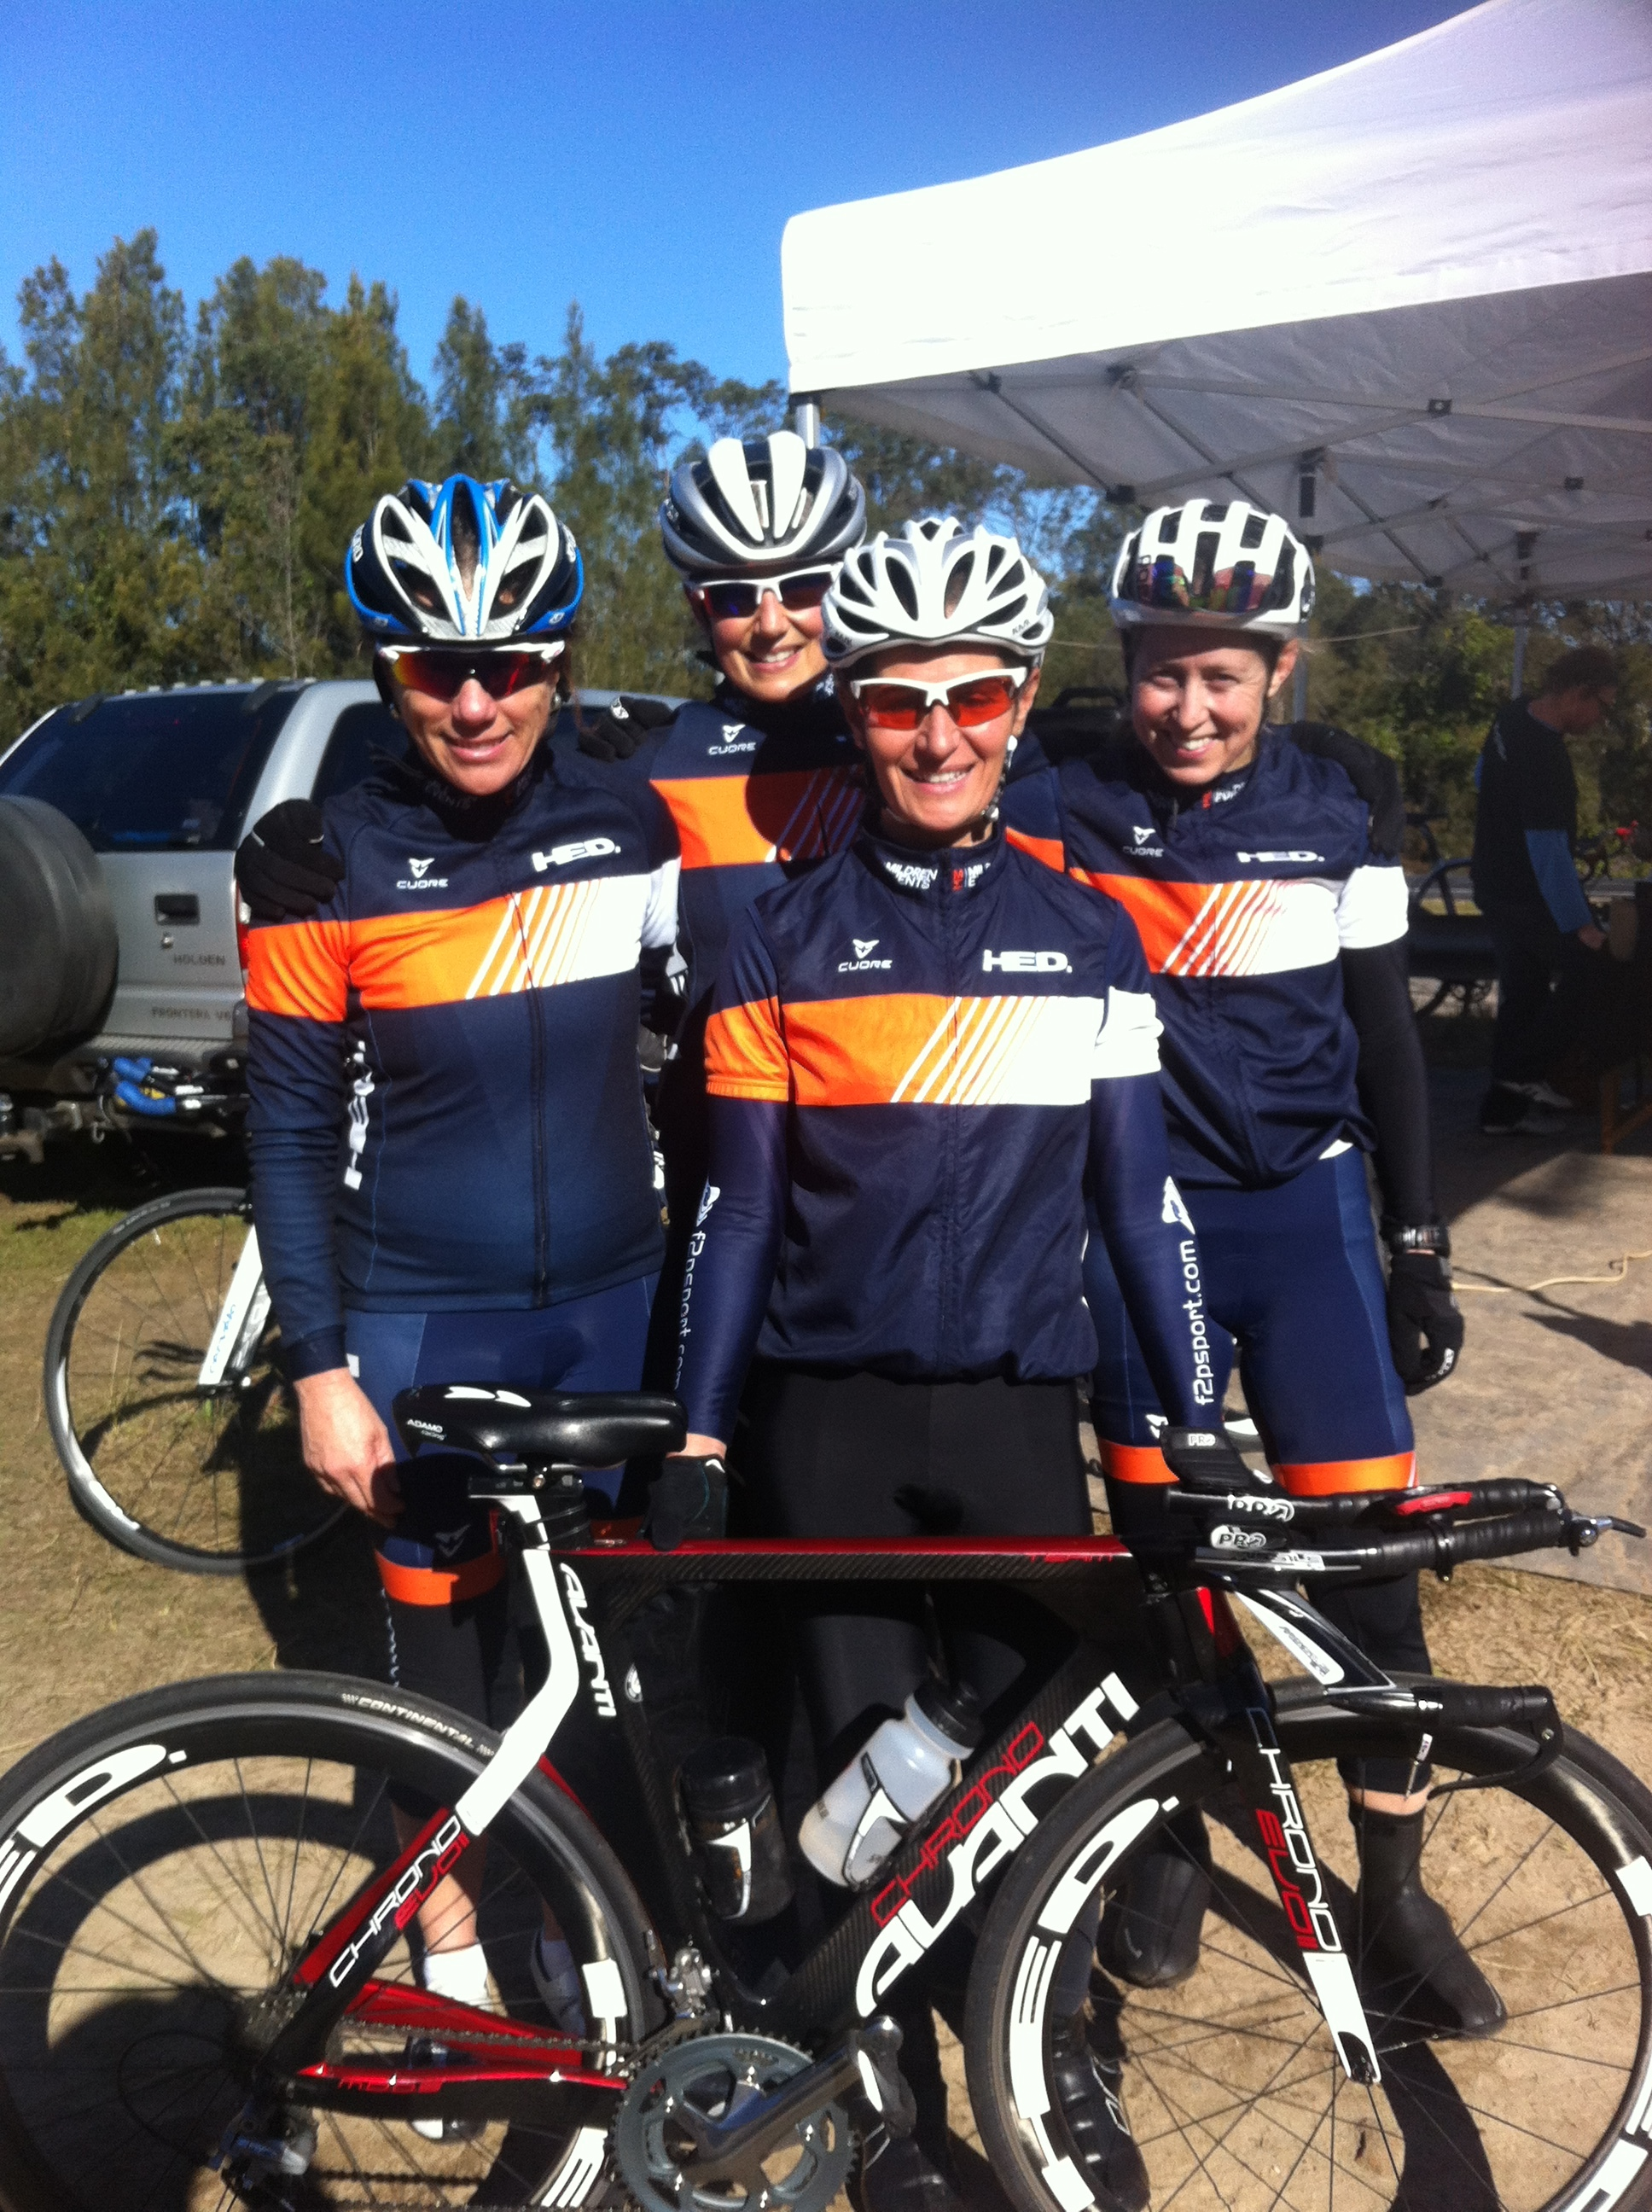 BiciSport - Mildren Events Womens Team  for the Nowra TTT Championships on 16 July with from left to right Frances Edwards, Kylie Mildren,Cecile Beams and Penny Kee